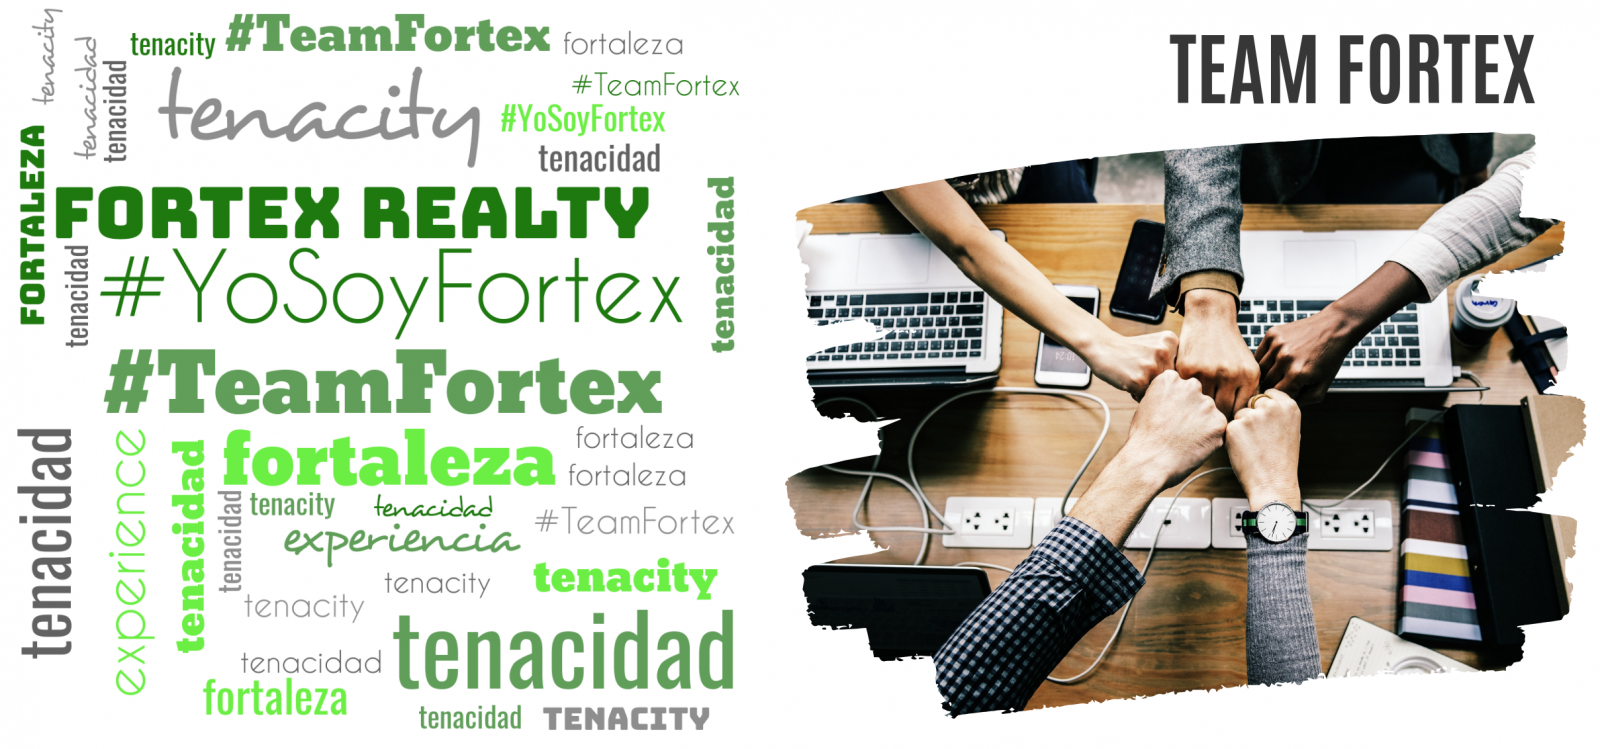 Team Fortex Realty - Join us